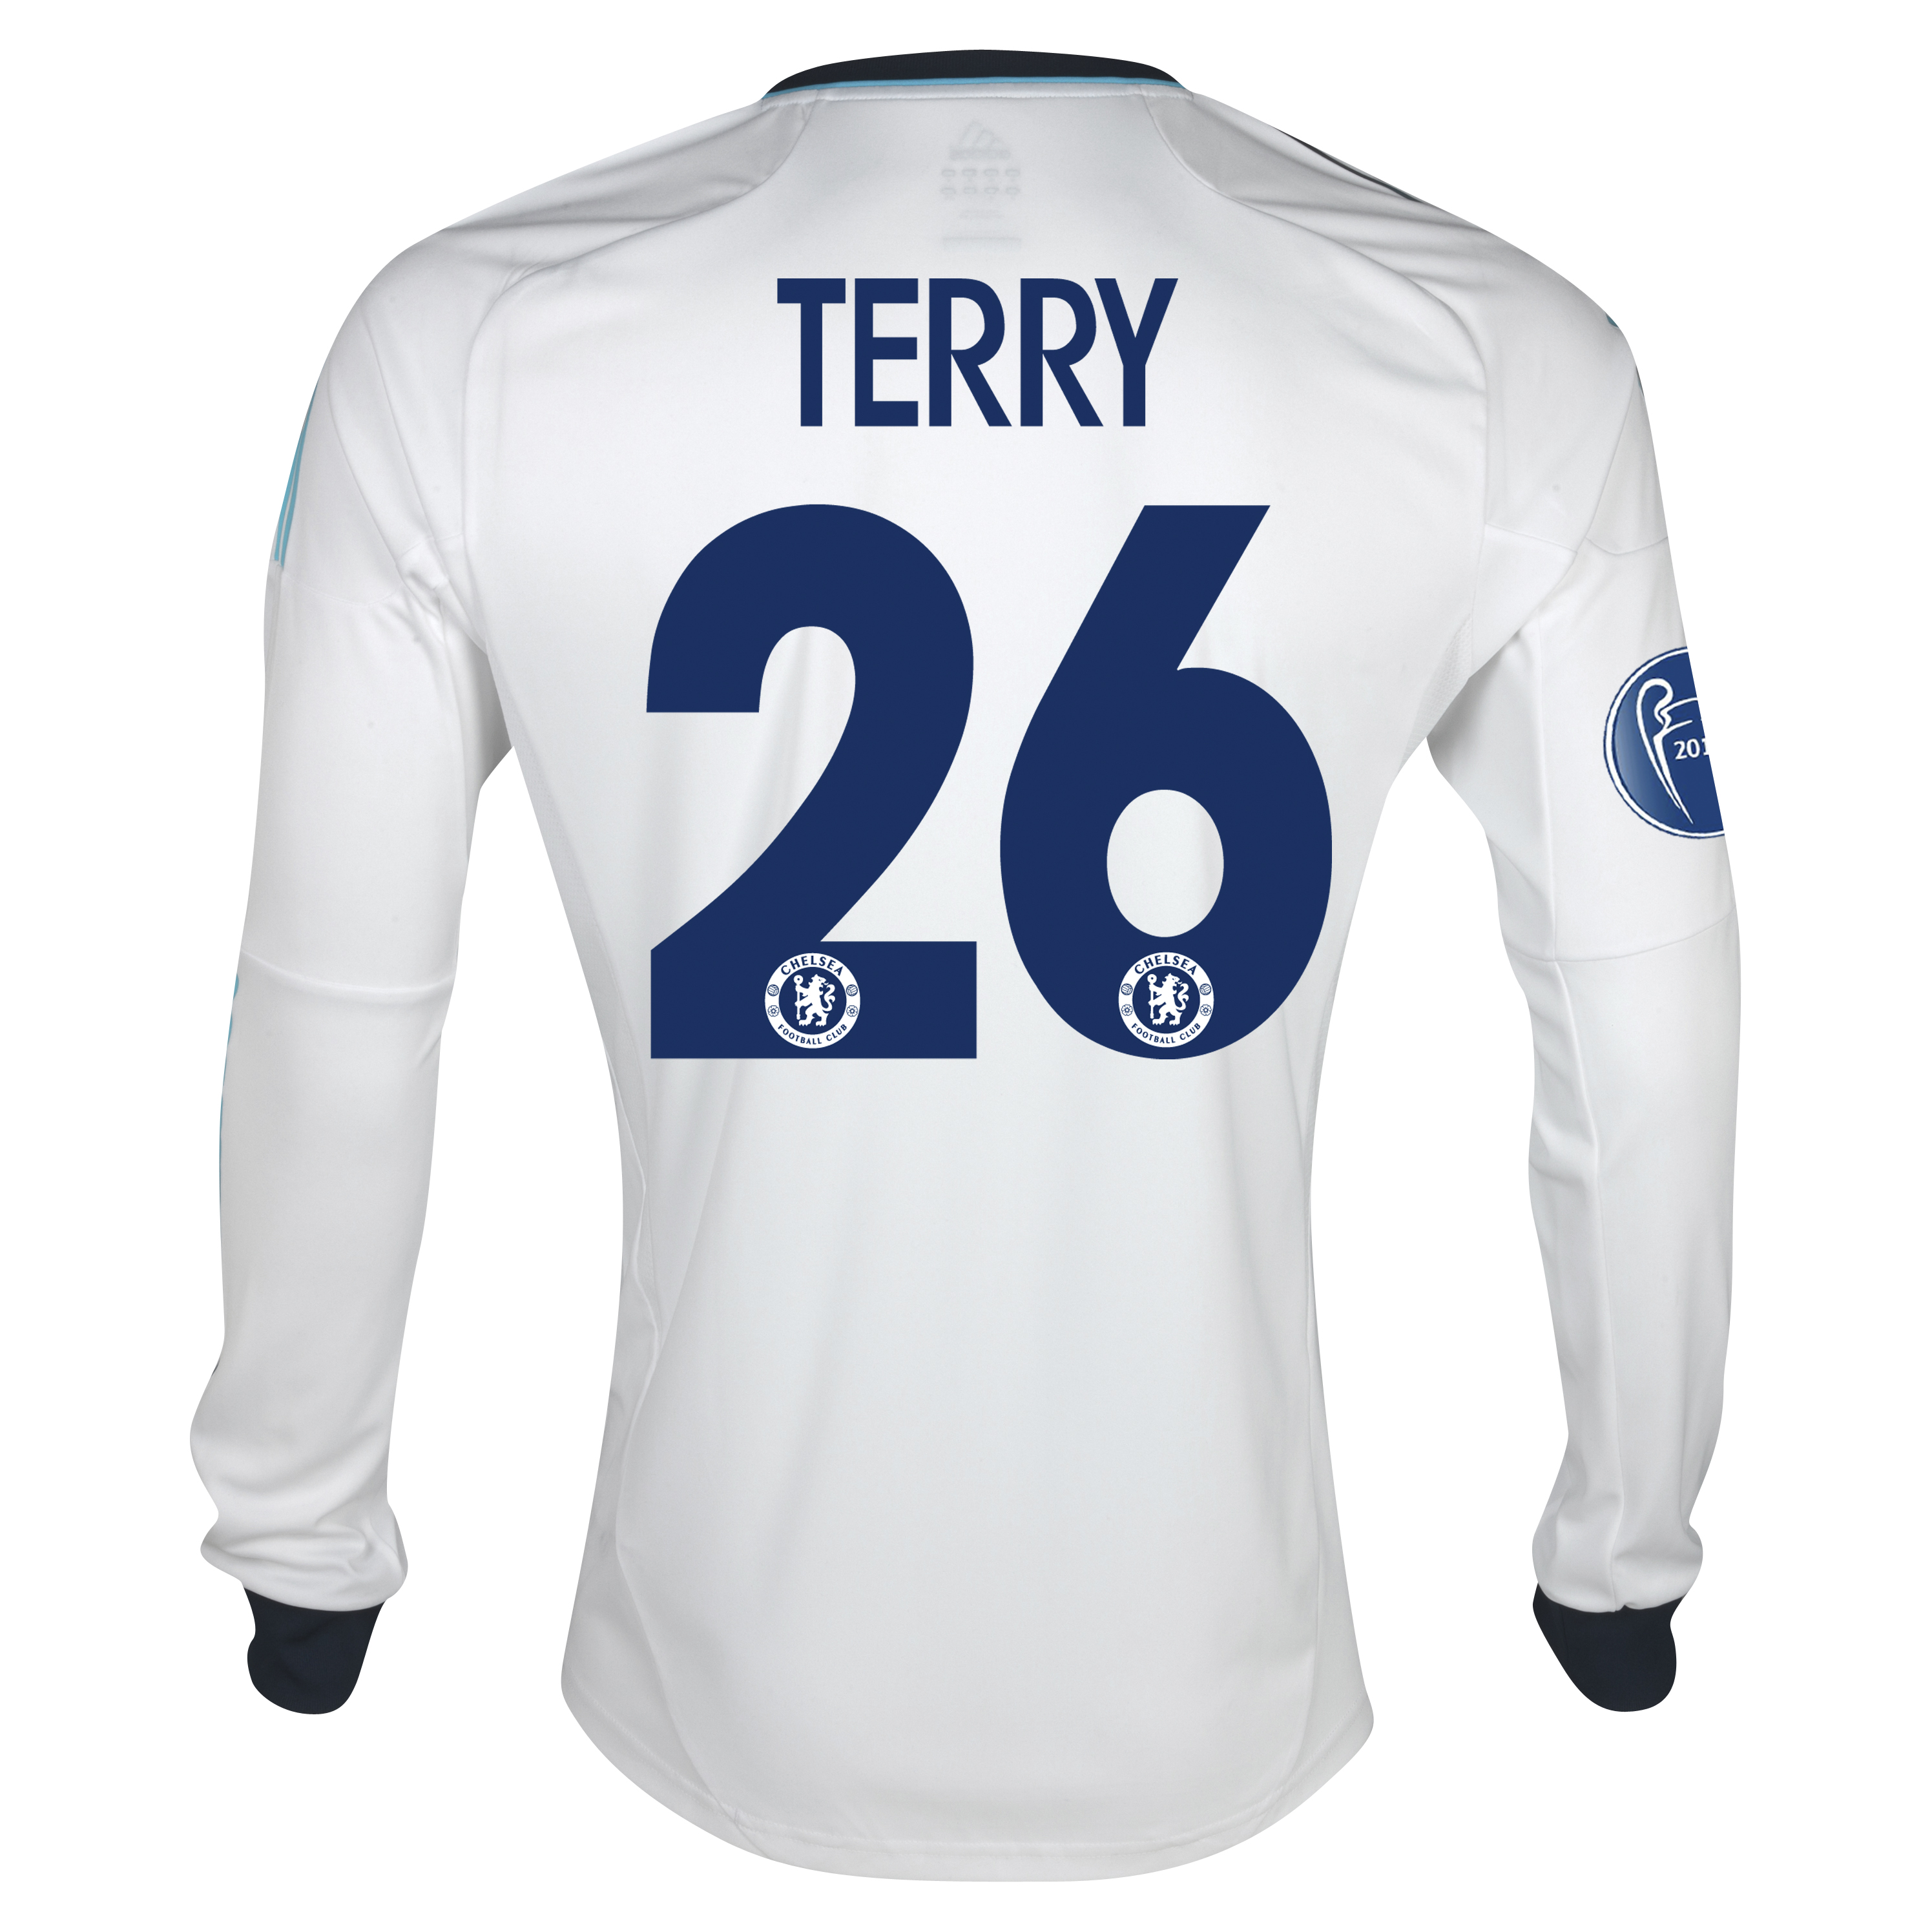 Chelsea UEFA Champions League Away Shirt 2012/13 - Long Sleeved with Terry 26 printing